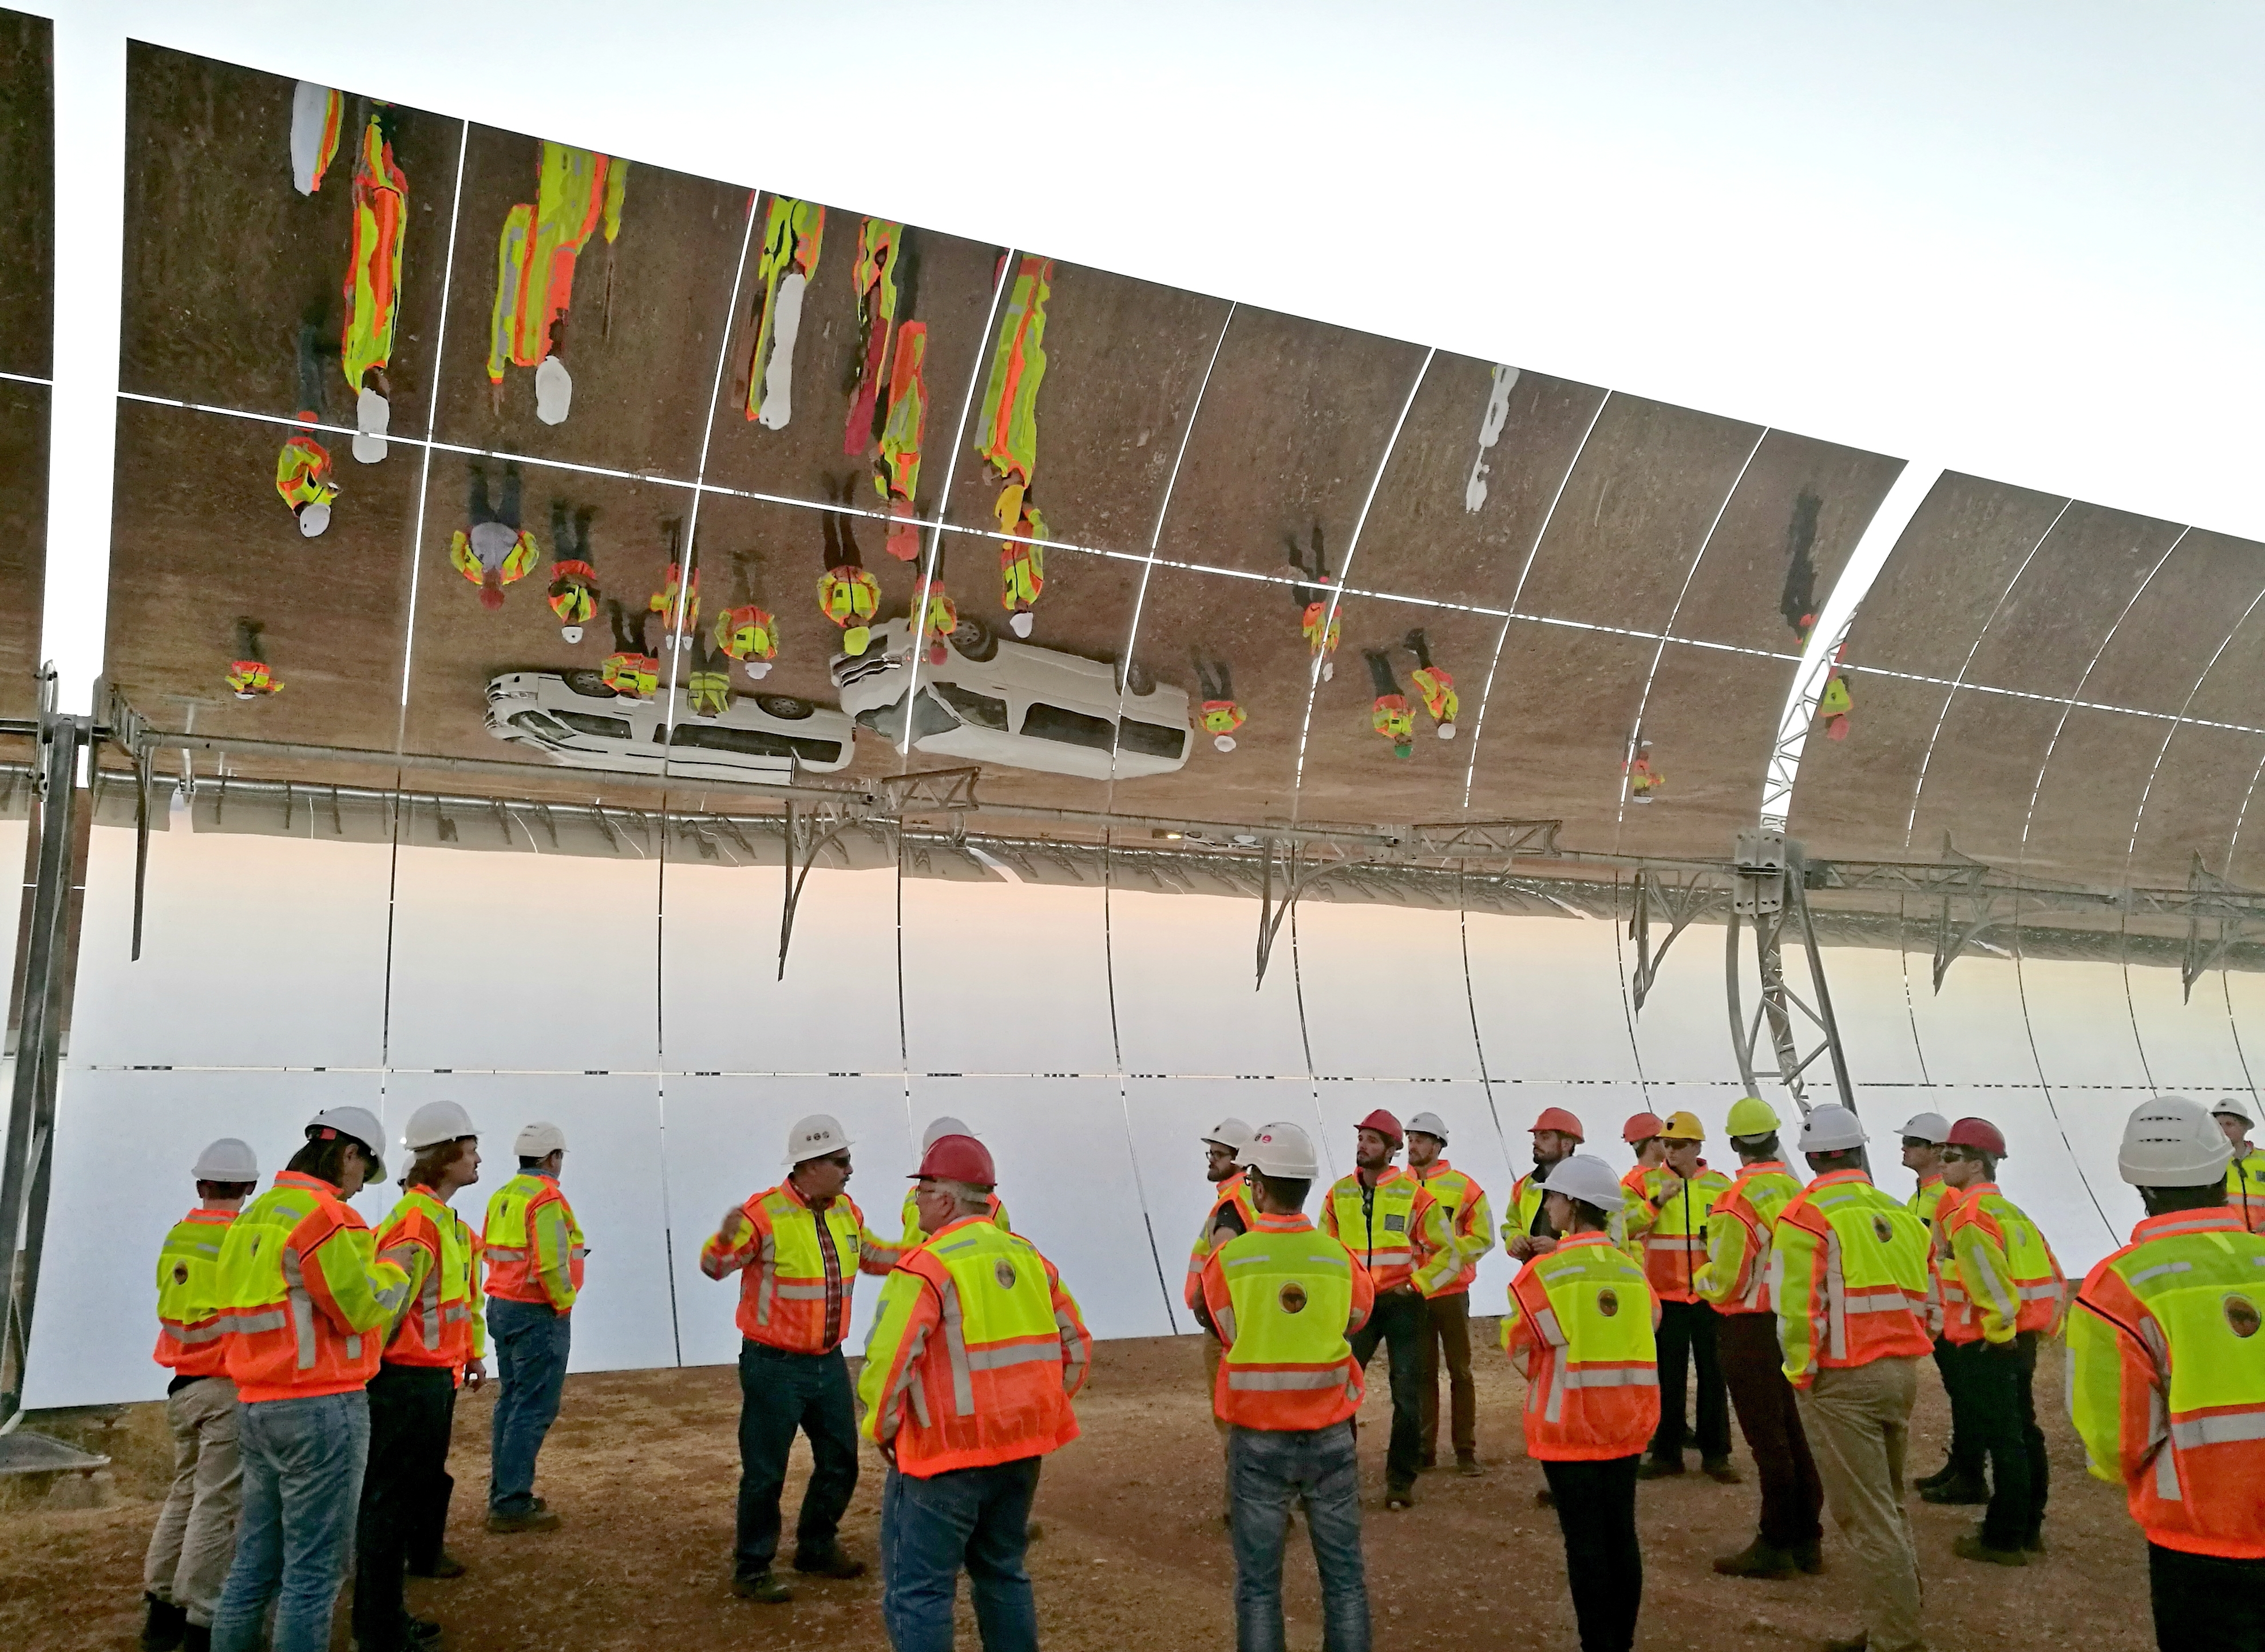 The technical tour team being shown around the Khatu Solar Park. Photo courtesy of Frank Duvenhage